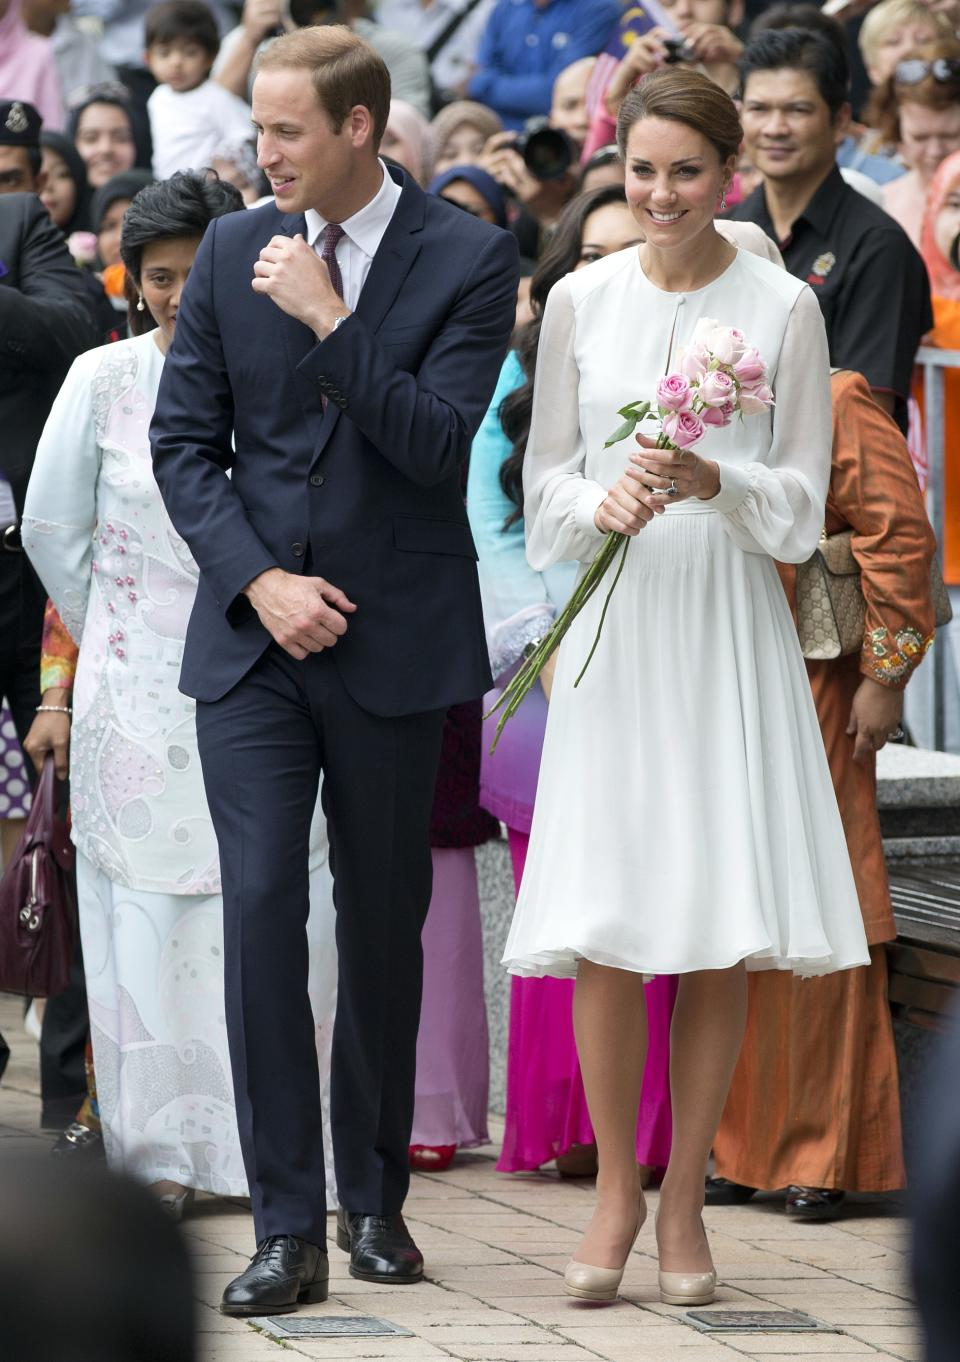 Prince William and his wife Kate, the Duke and Duchess of Cambridge take a walk through a central city park in Kuala Lumpur, Malaysia, Friday, Sept. 14, 2012. Prince William and Kate are on a nine-day tour of the Far East and South Pacific in celebration of Queen Elizabeth II's Diamond Jubilee. (AP Photo/Mark Baker)